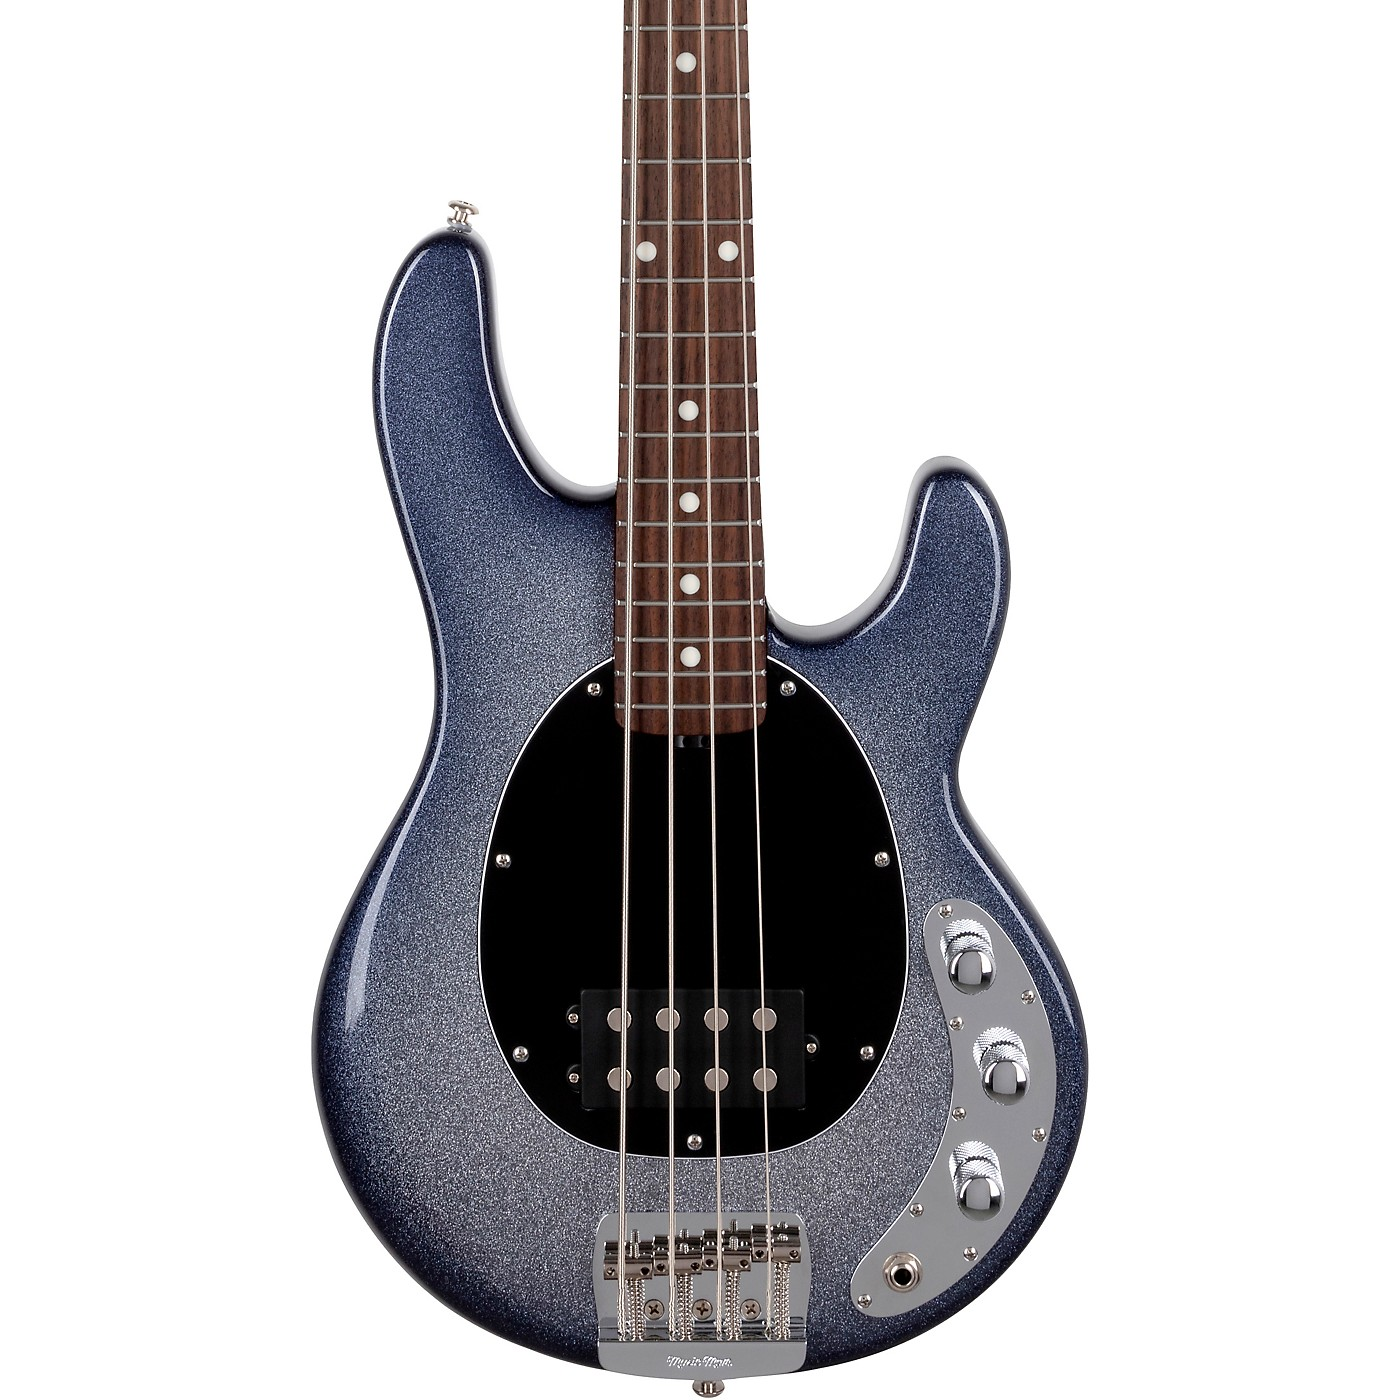 Ernie Ball Music Man Short-Scale StingRay Bass Roasted Maple Neck with Rosewood Fingerboard thumbnail